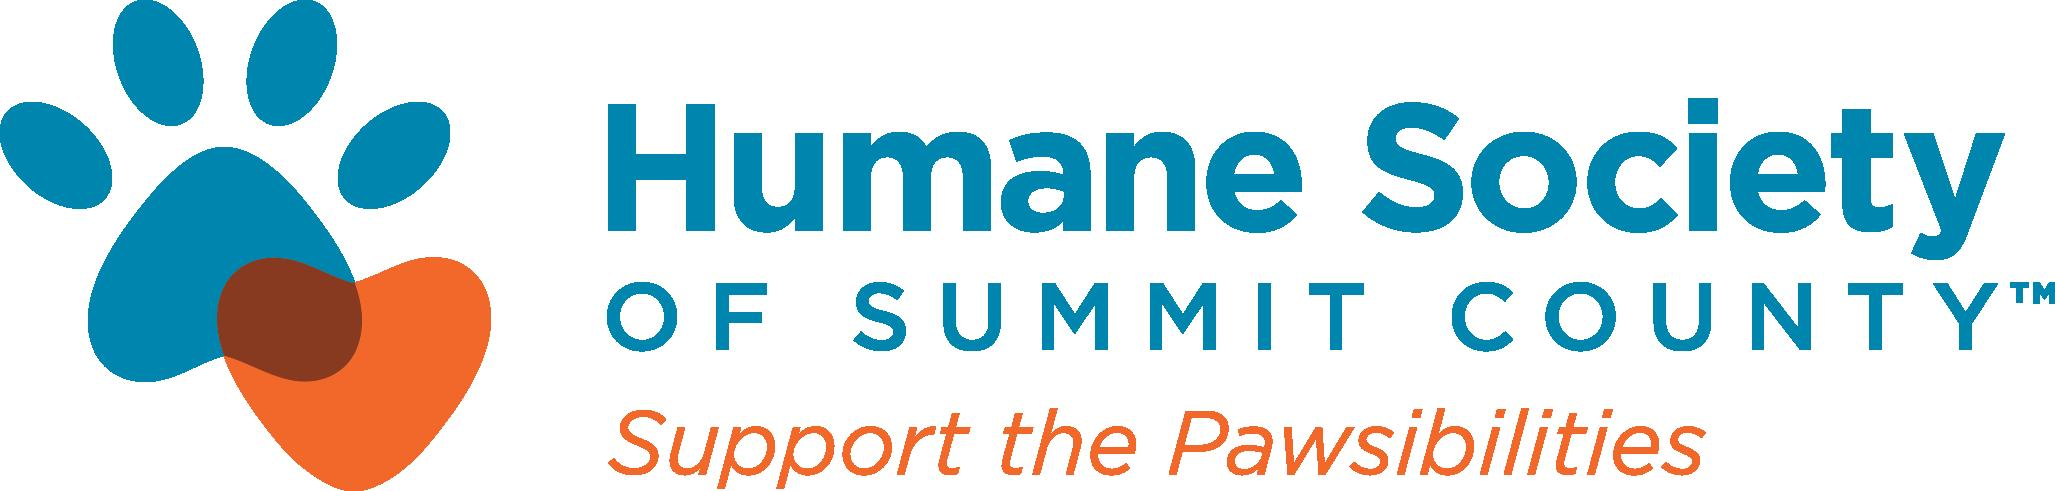 Humane Society of Summit County